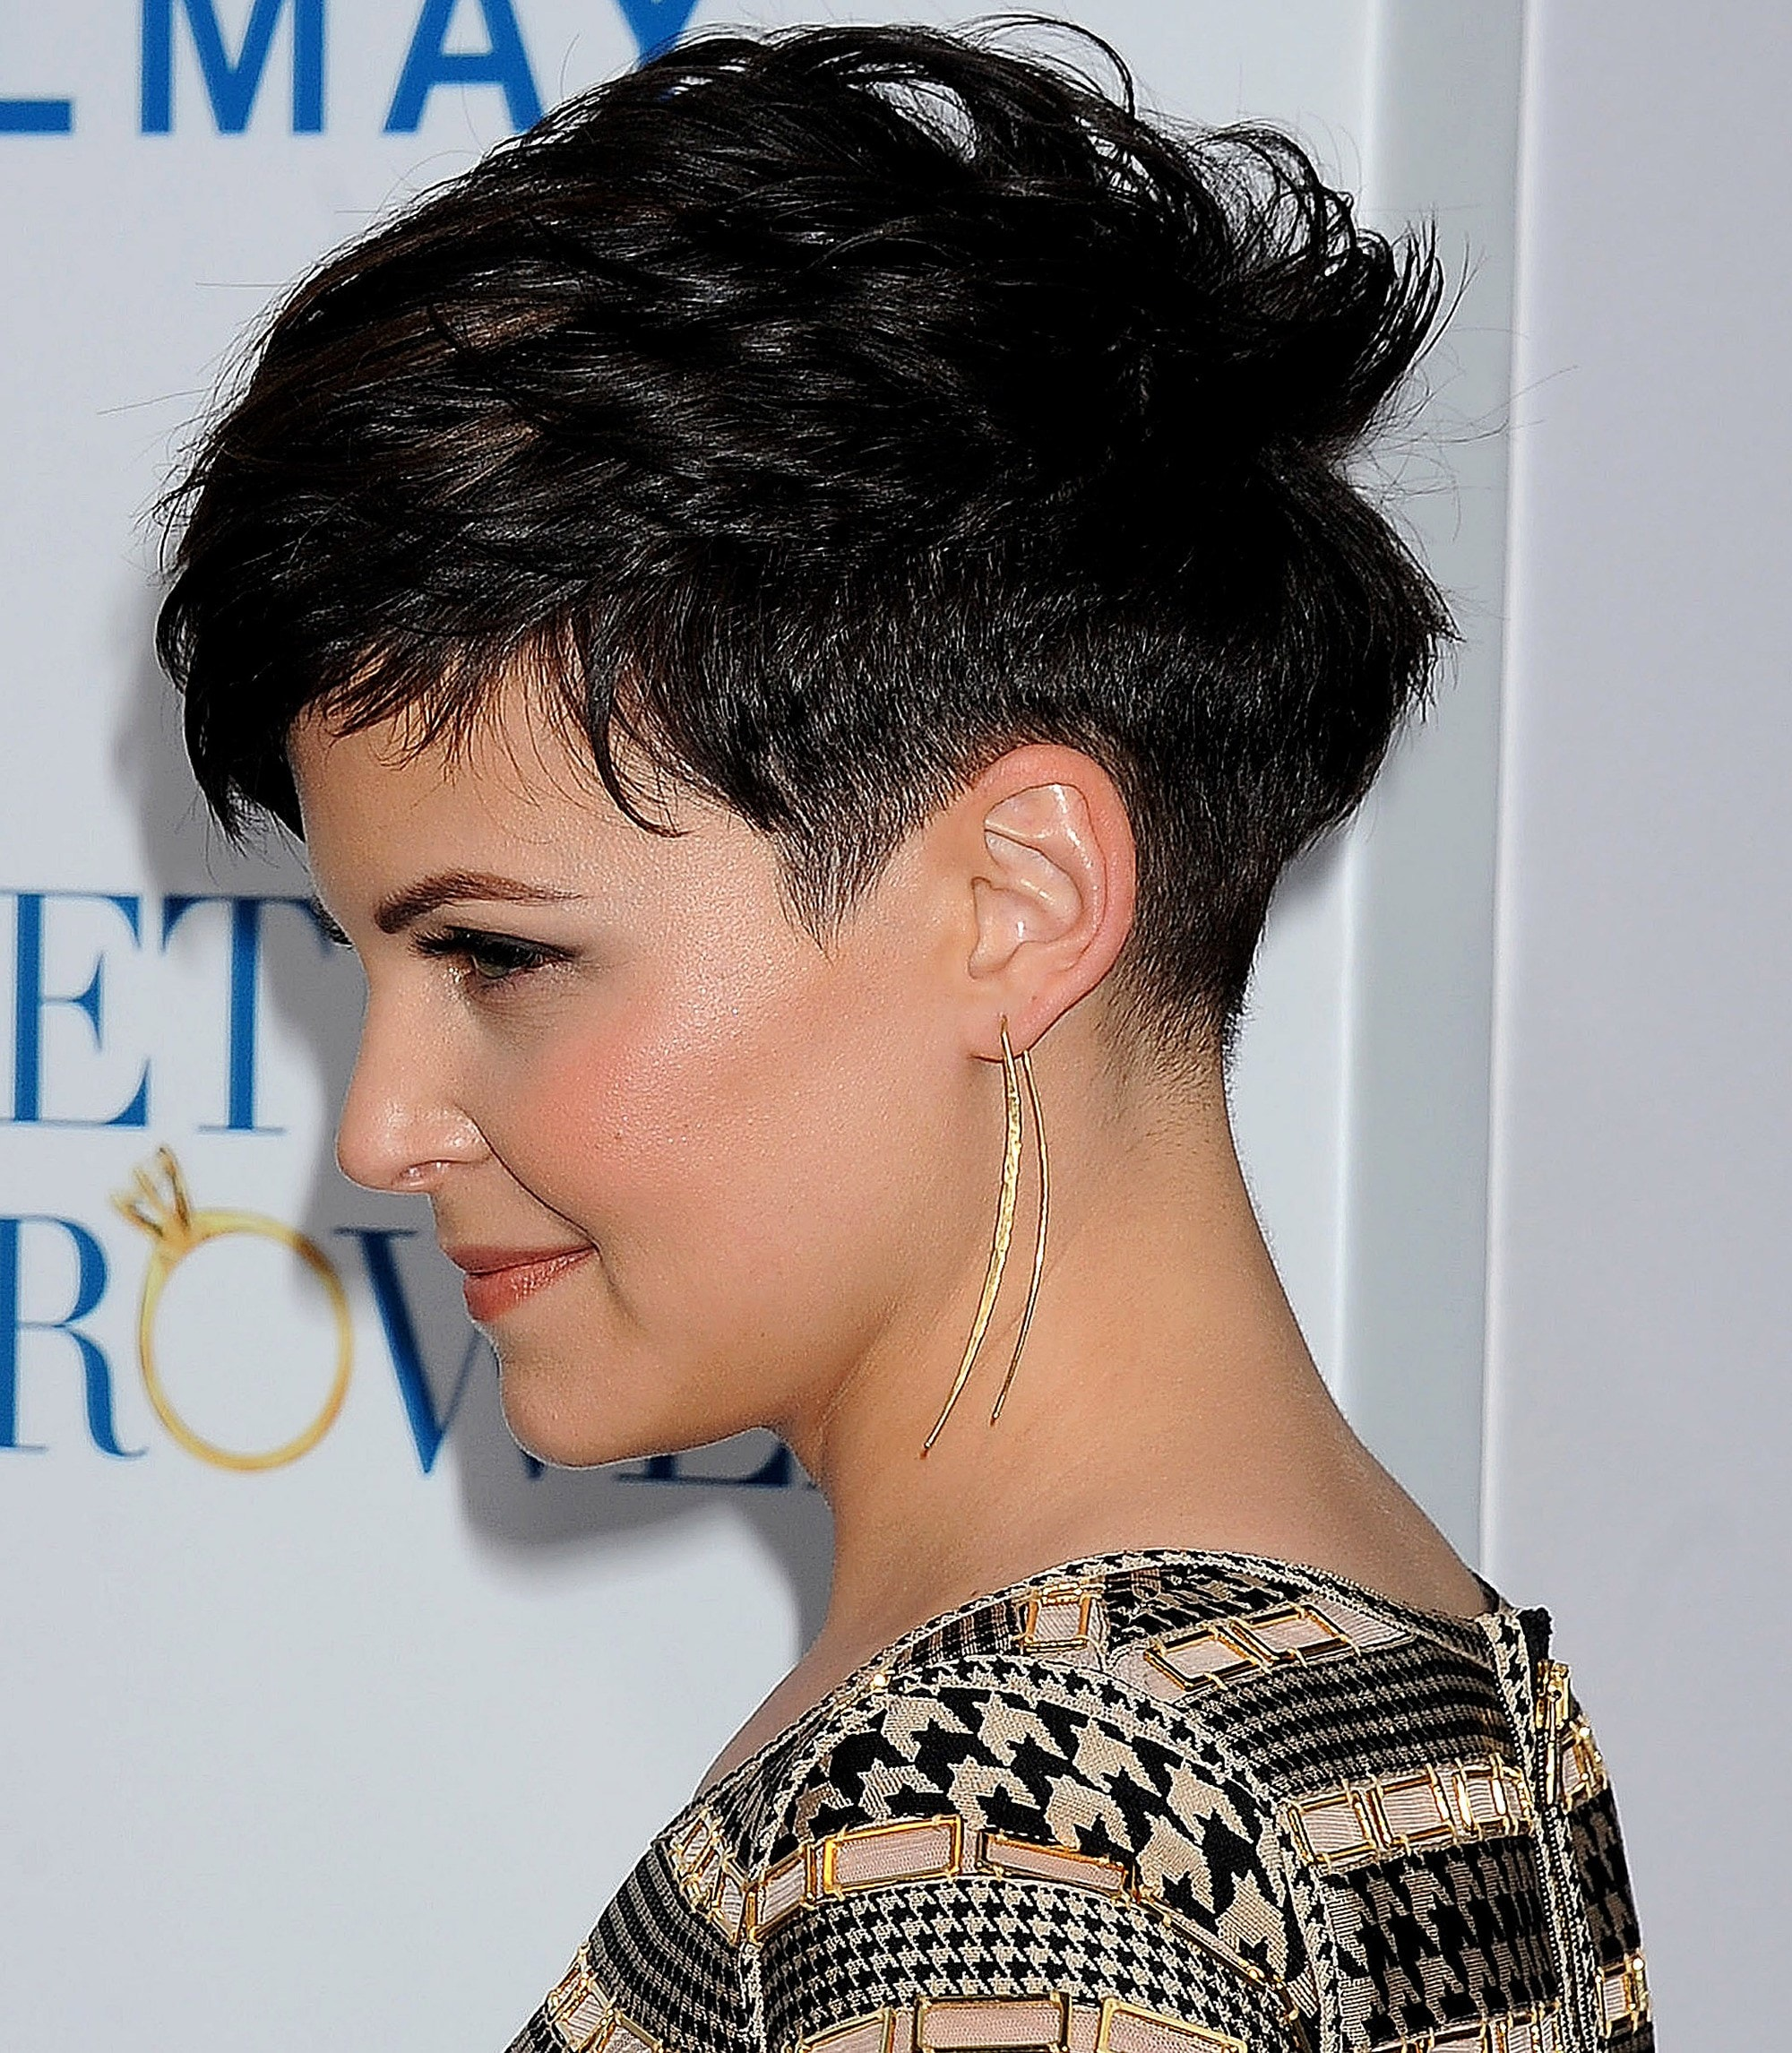 12 Handy Hair Tips for Growing out an Undercut for Women